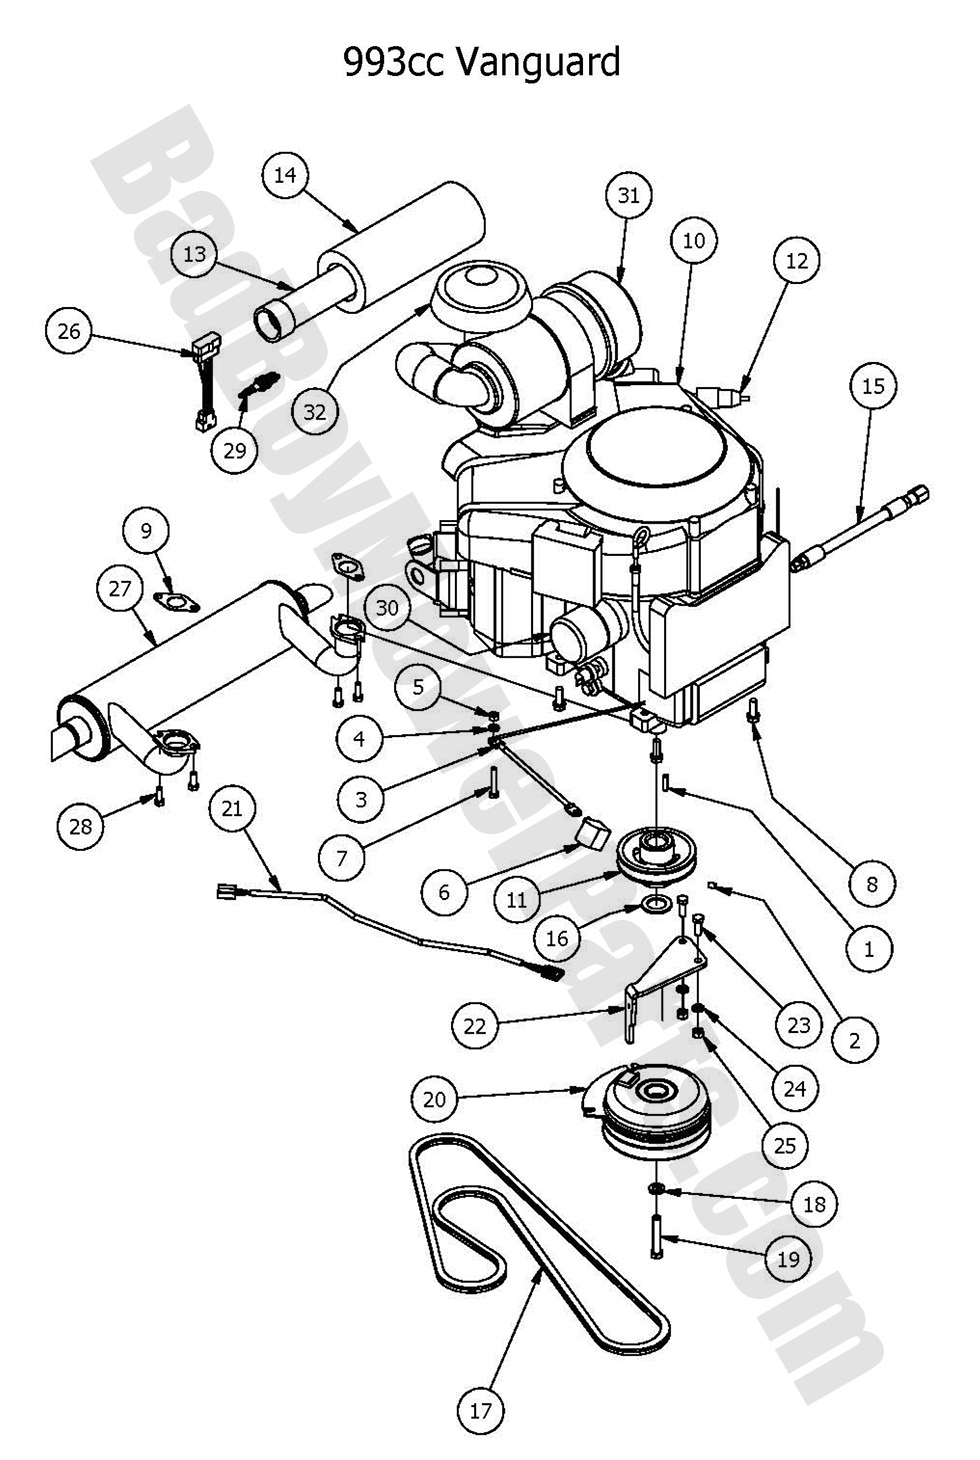 Bad Boy Mower Parts 2016 Outlaw Xp Engine Vanguard 993cc Diagram Wiring 3 Position Number Sku Product Title Price